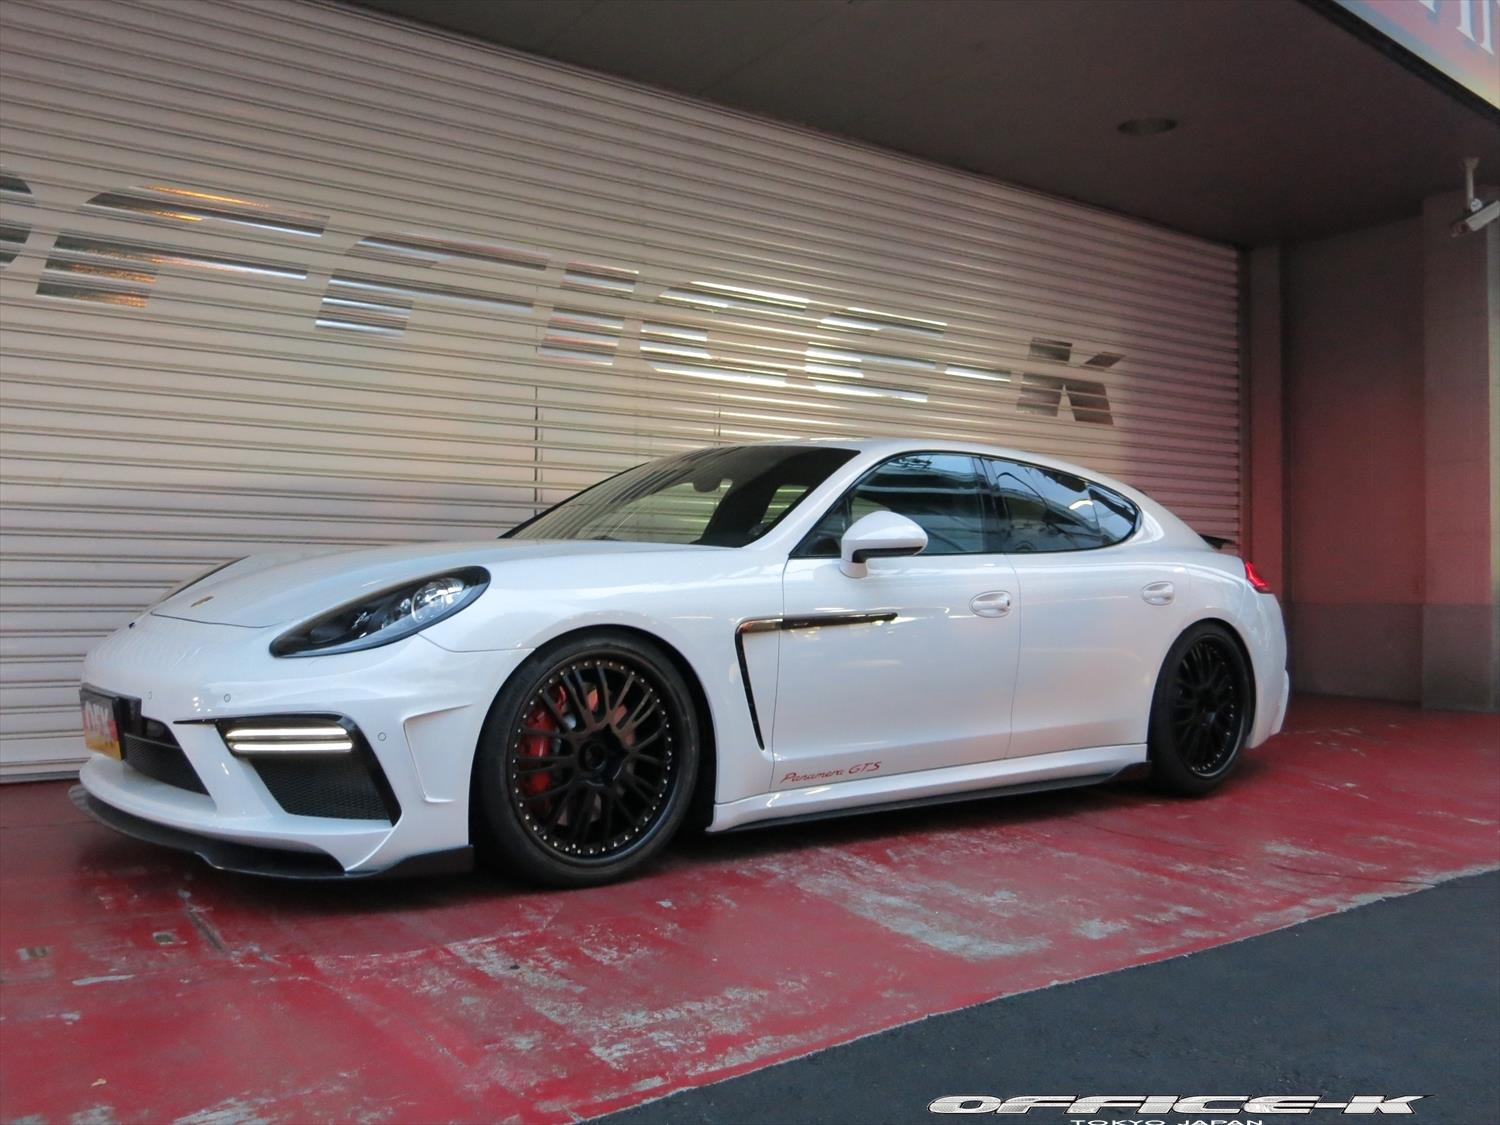 New Porsche Panamera Gts Customized By Office K In Japan